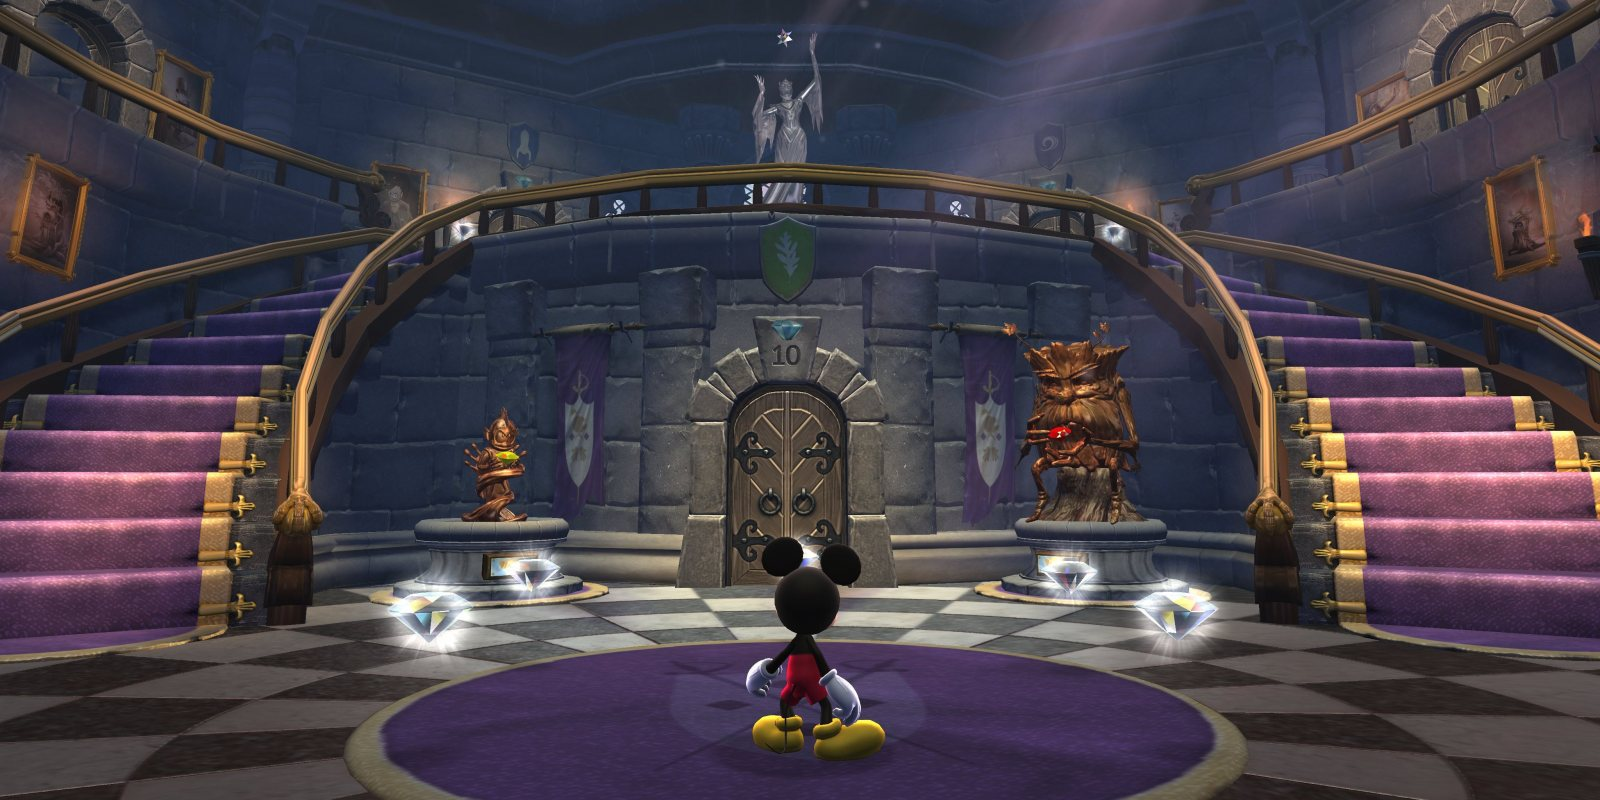 Disney's Castle of Illusion Starring Mickey Mouse drops to its best price in over a year: $1 (Reg. $10)